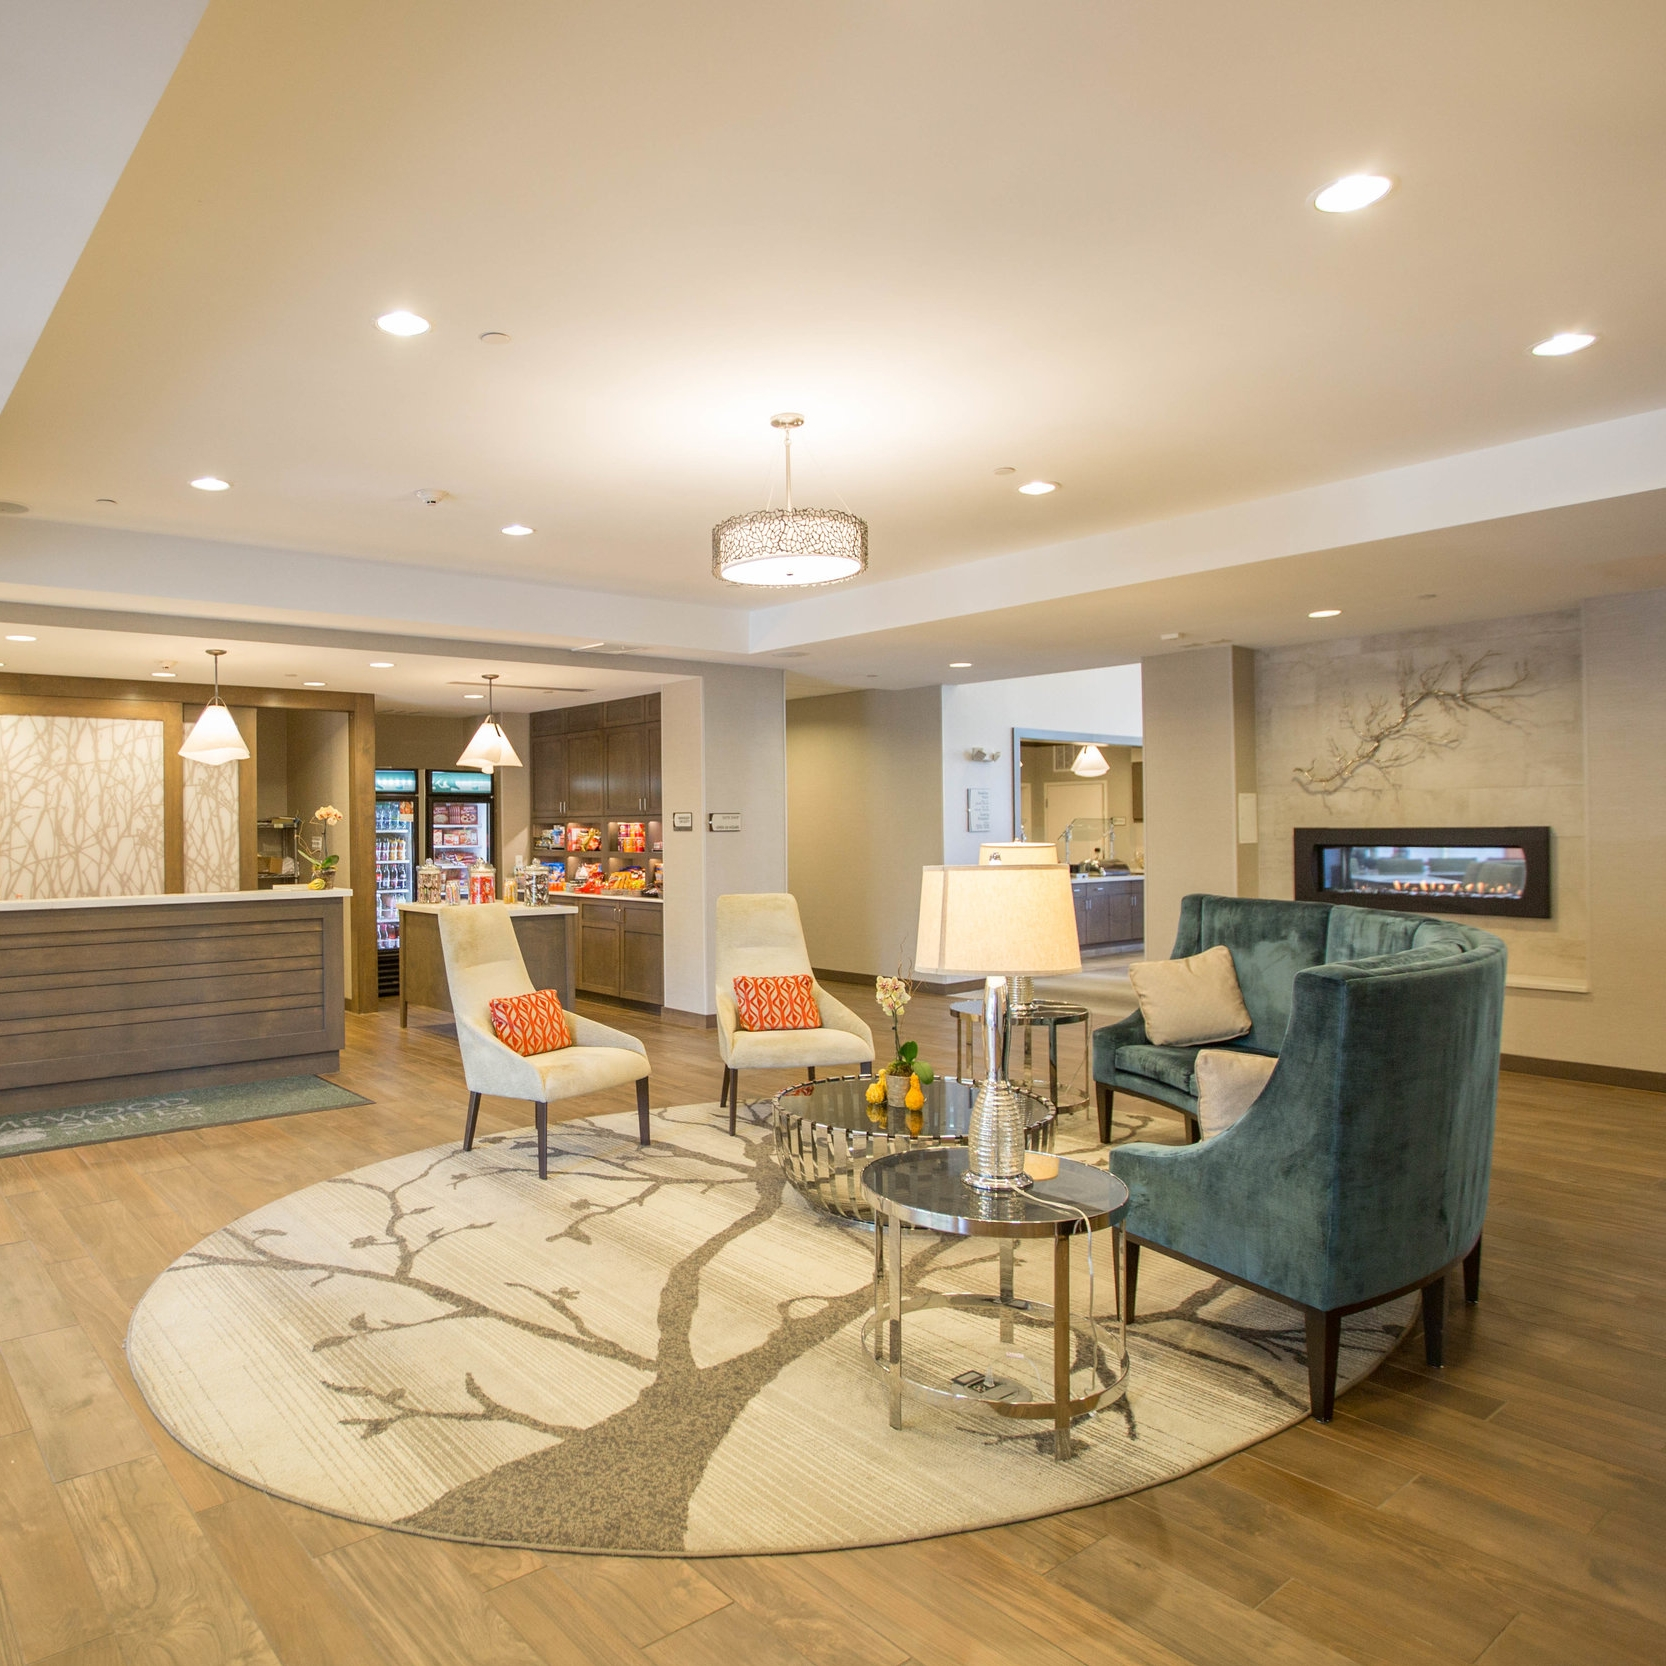 Homewood Suites Hotel   78,000 Square Feet 105 Guest Rooms Contractor: Opechee Nashua, New Hampshire